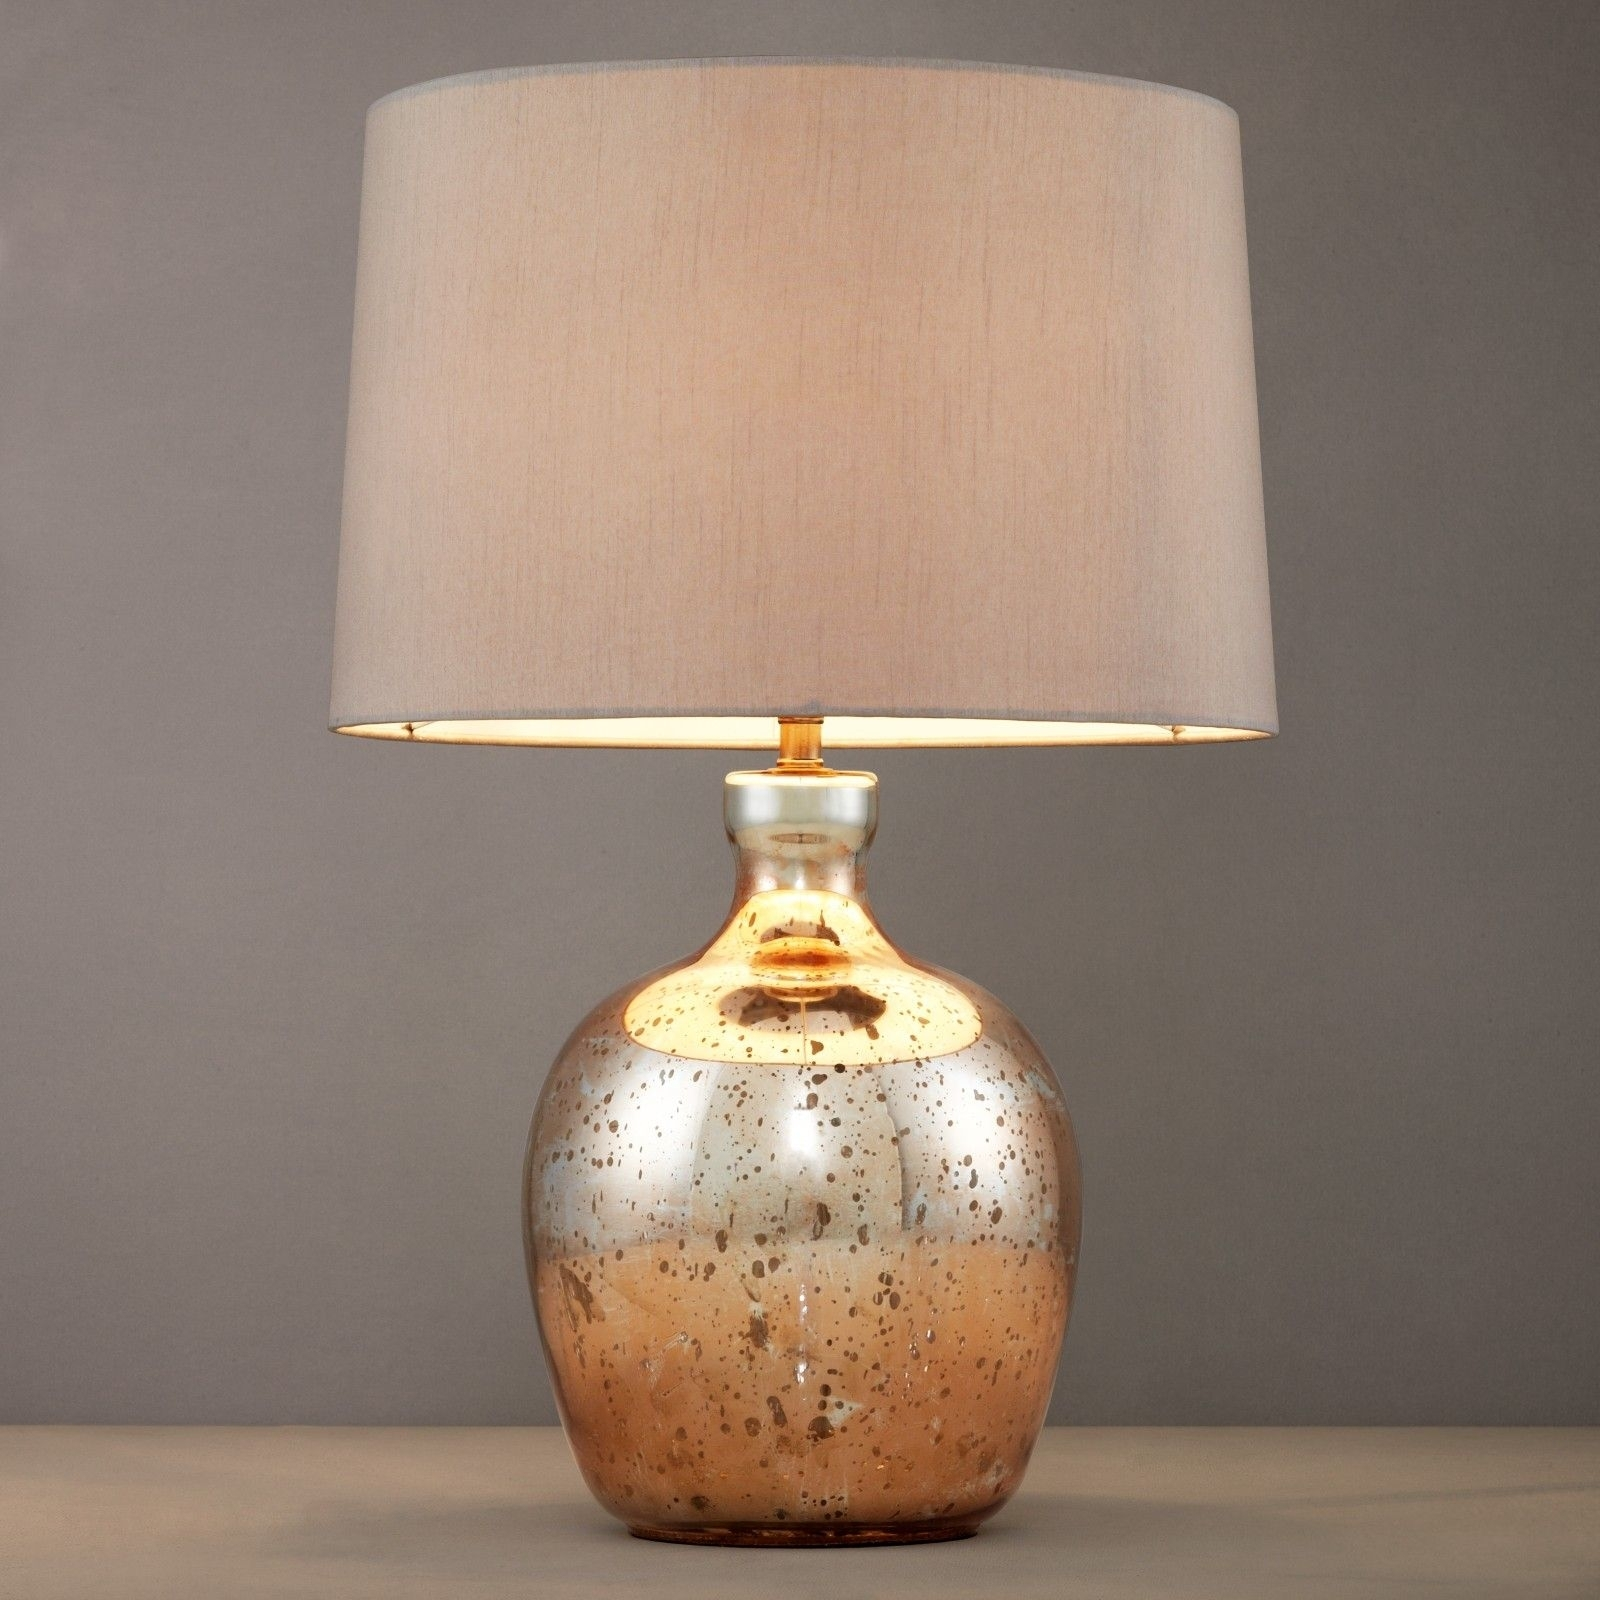 John Lewis Tabitha Copper Table Lamp | John Lewis, Desks And Ranges Throughout John Lewis Table Lamps For Living Room (View 3 of 15)